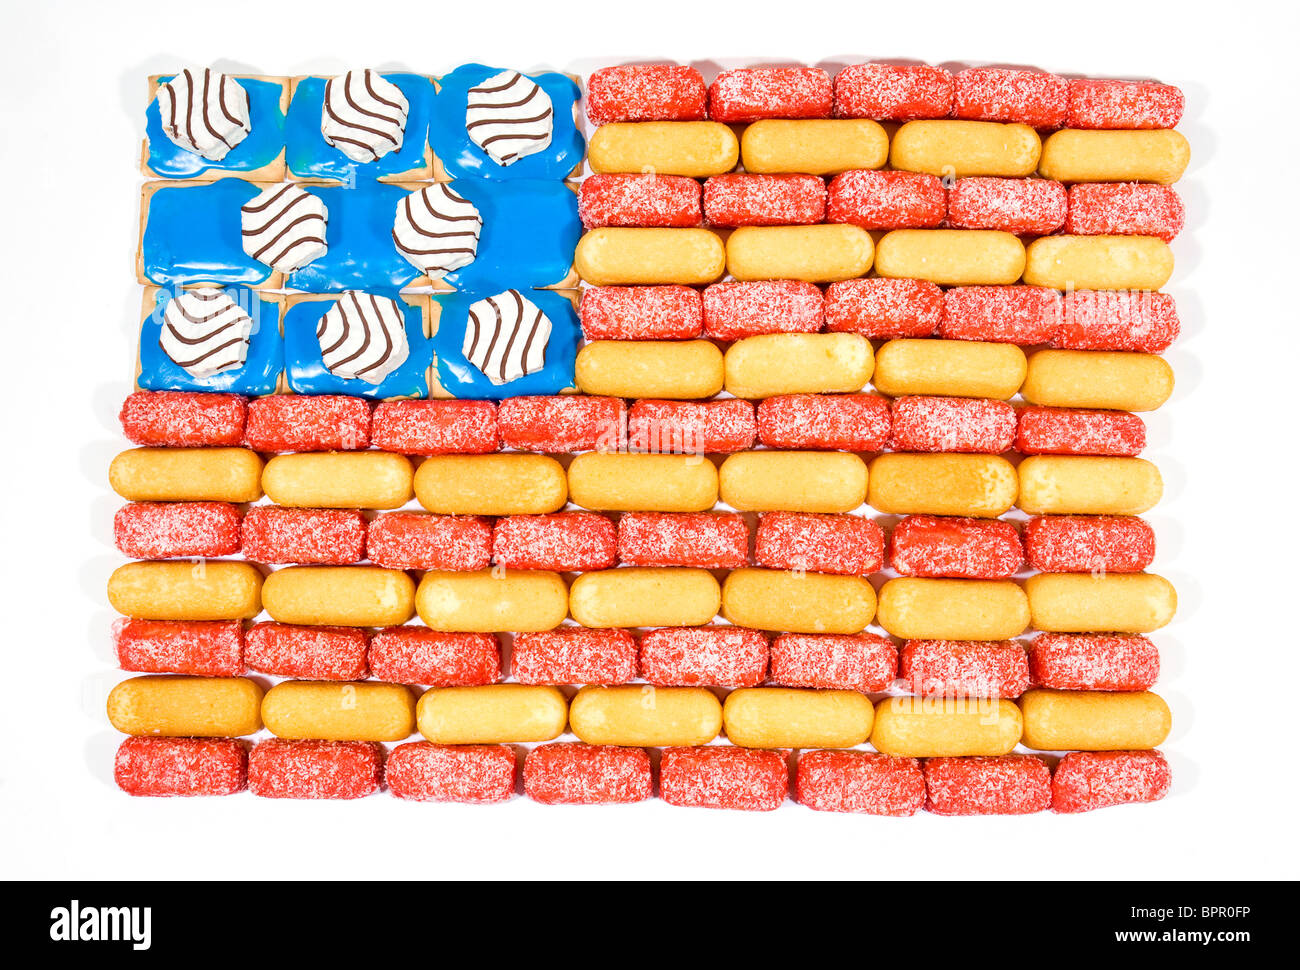 A American Flag made of junk food items including Twinkies, Zingers and Pop Tarts.  - Stock Image